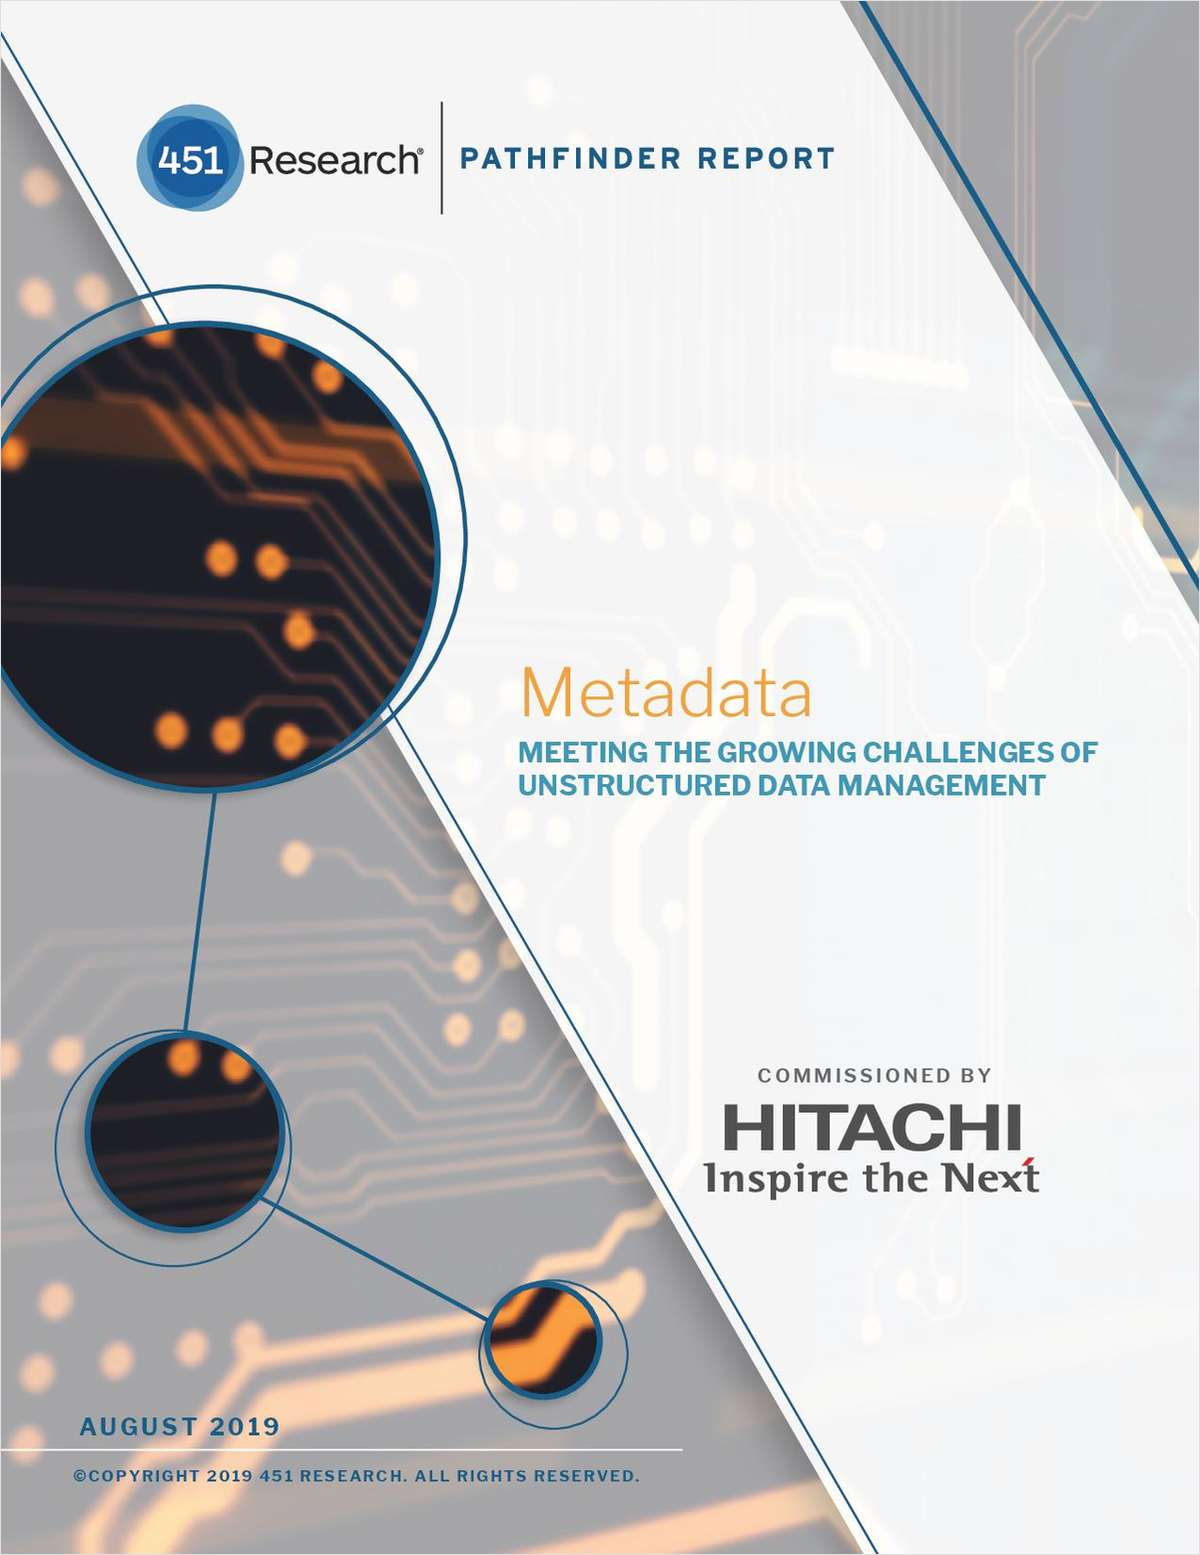 METADATA:  Meeting the Growing Challenges of Unstructured Data Management